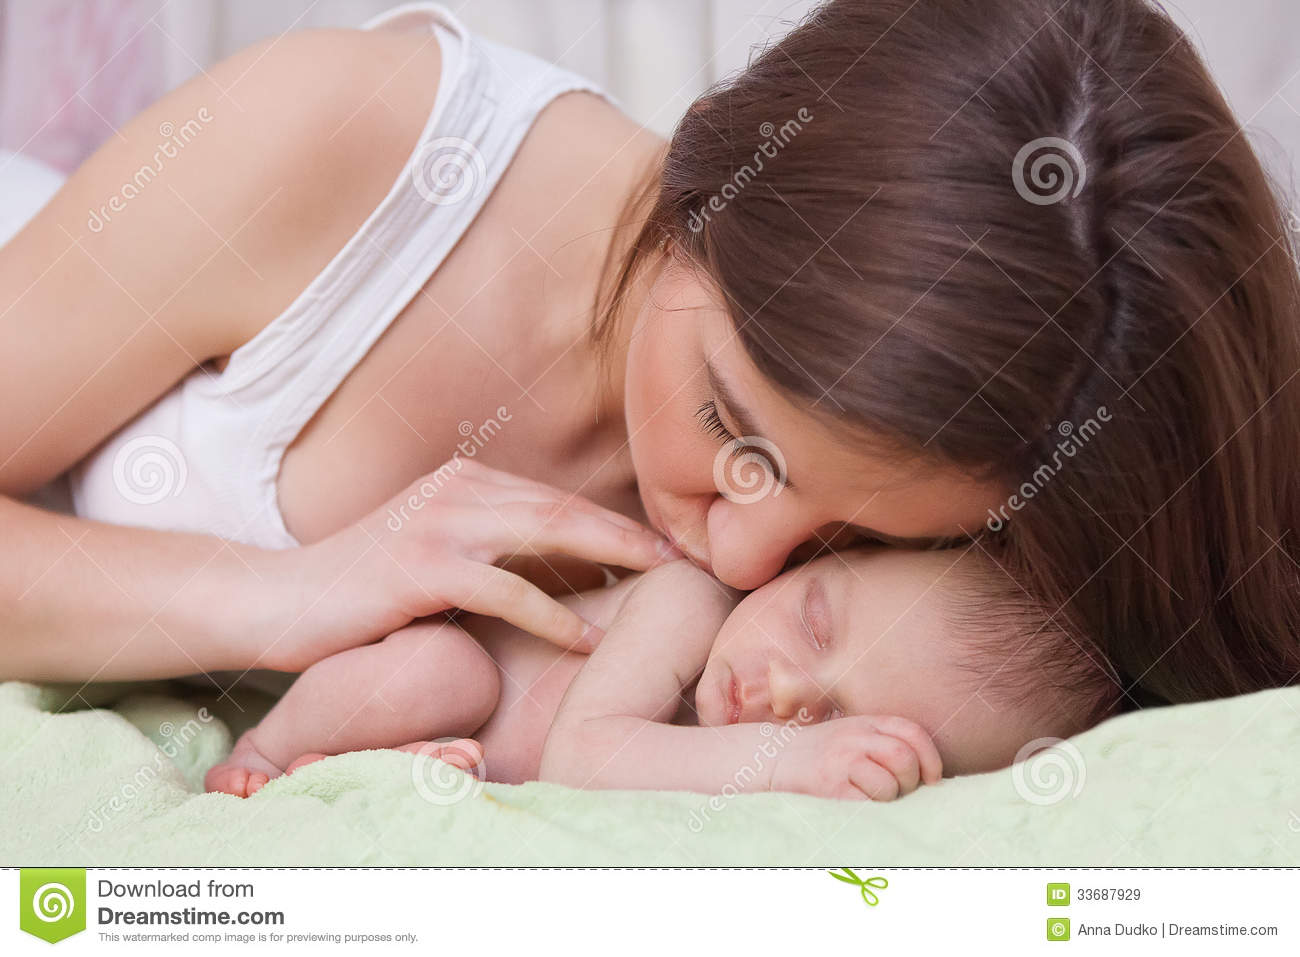 Woman Holding And Newborn Baby Stock Image - Image: 33687929